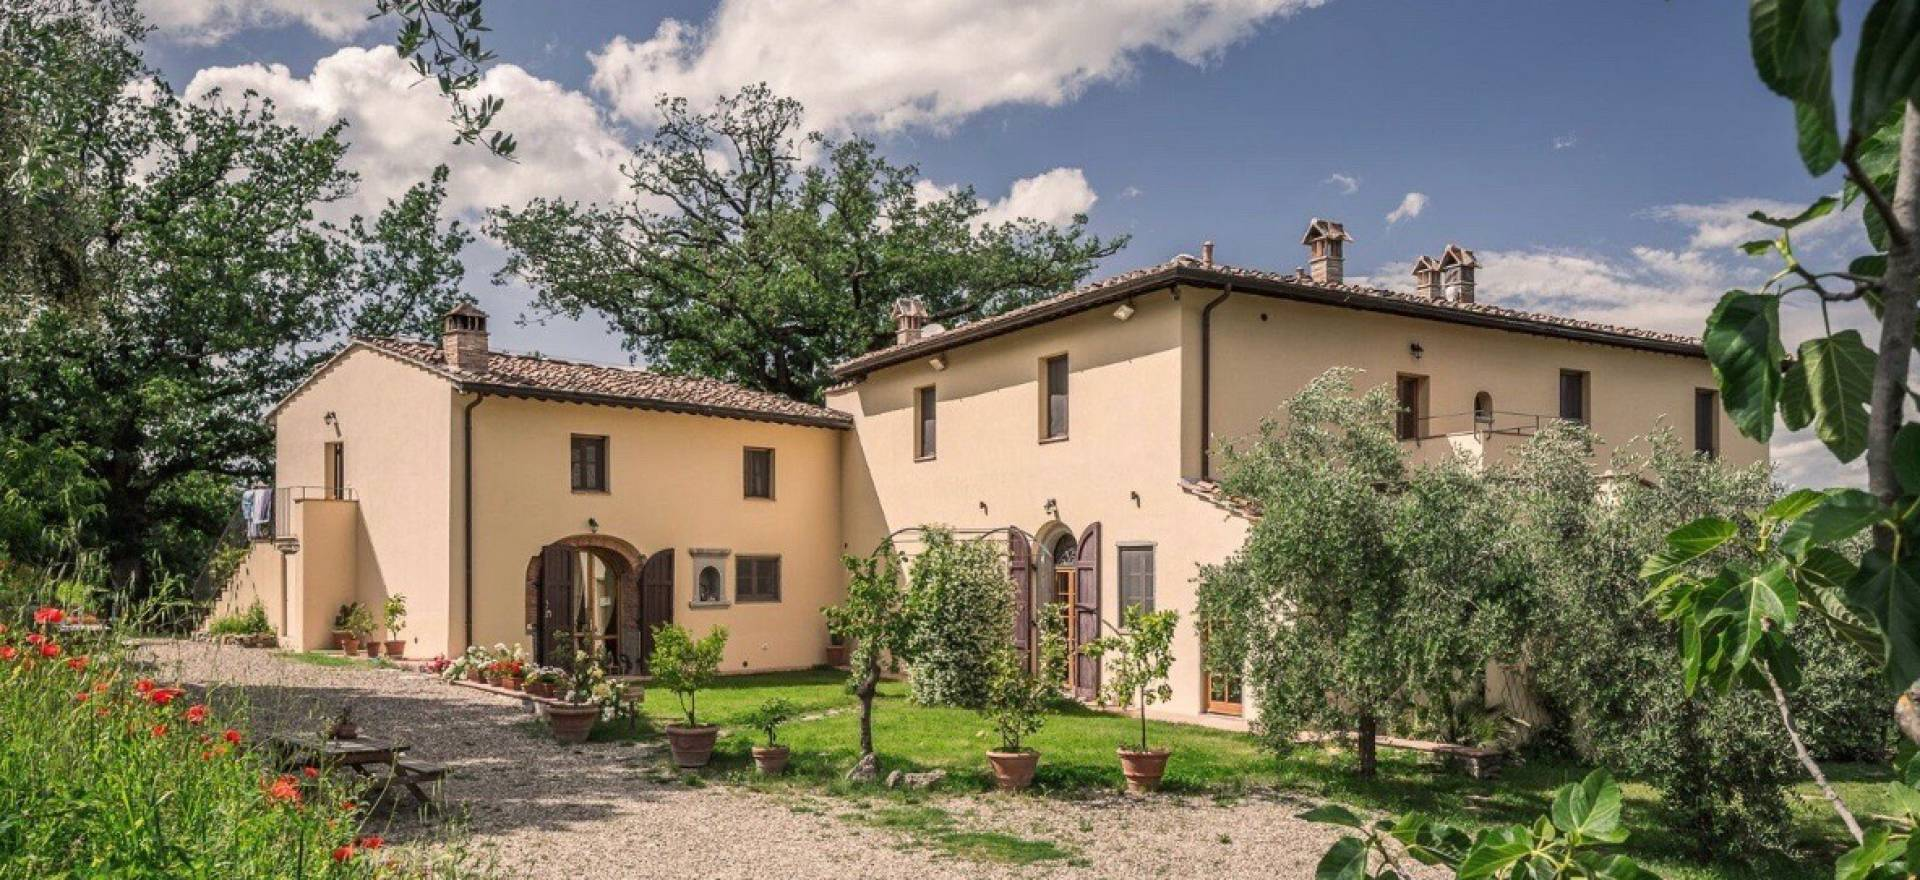 Agriturismo Tuscany Cozy agriturismo in the Chianti region near Florence